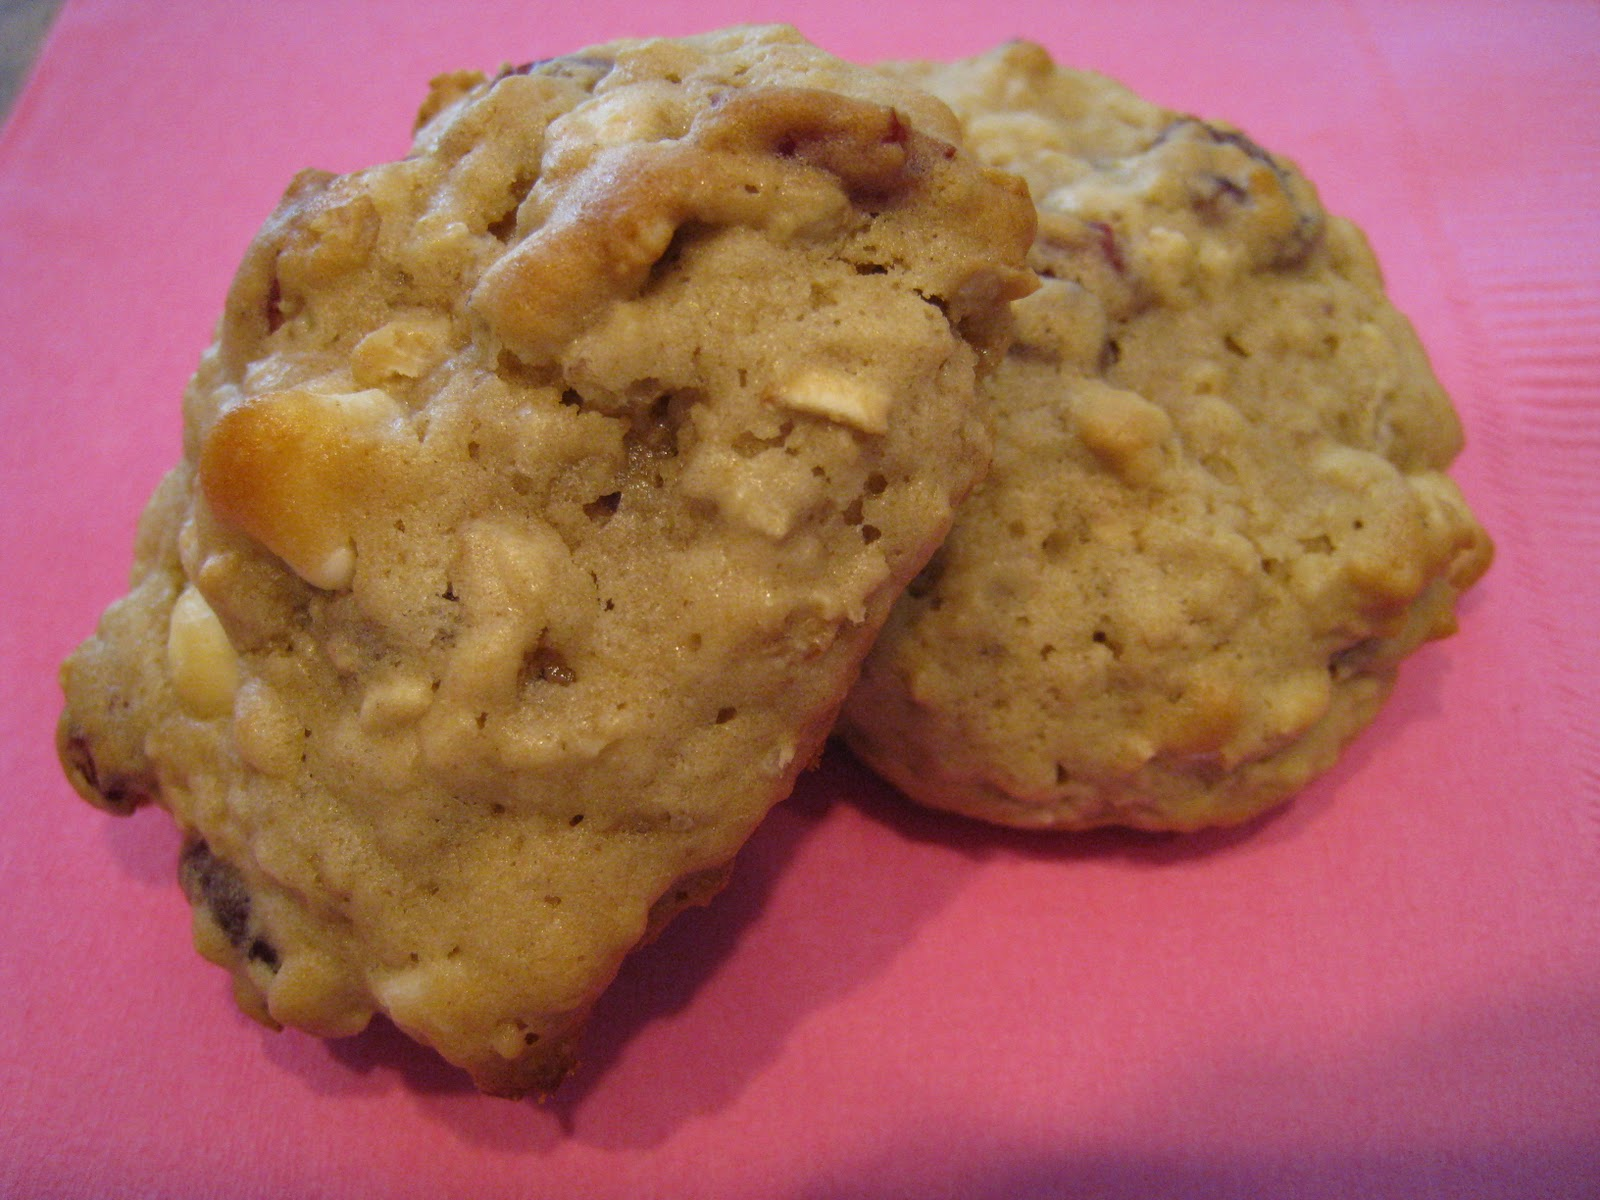 It's Fun 4 Me!: Oatmeal Cranberry White Chocolate Chunk Cookies